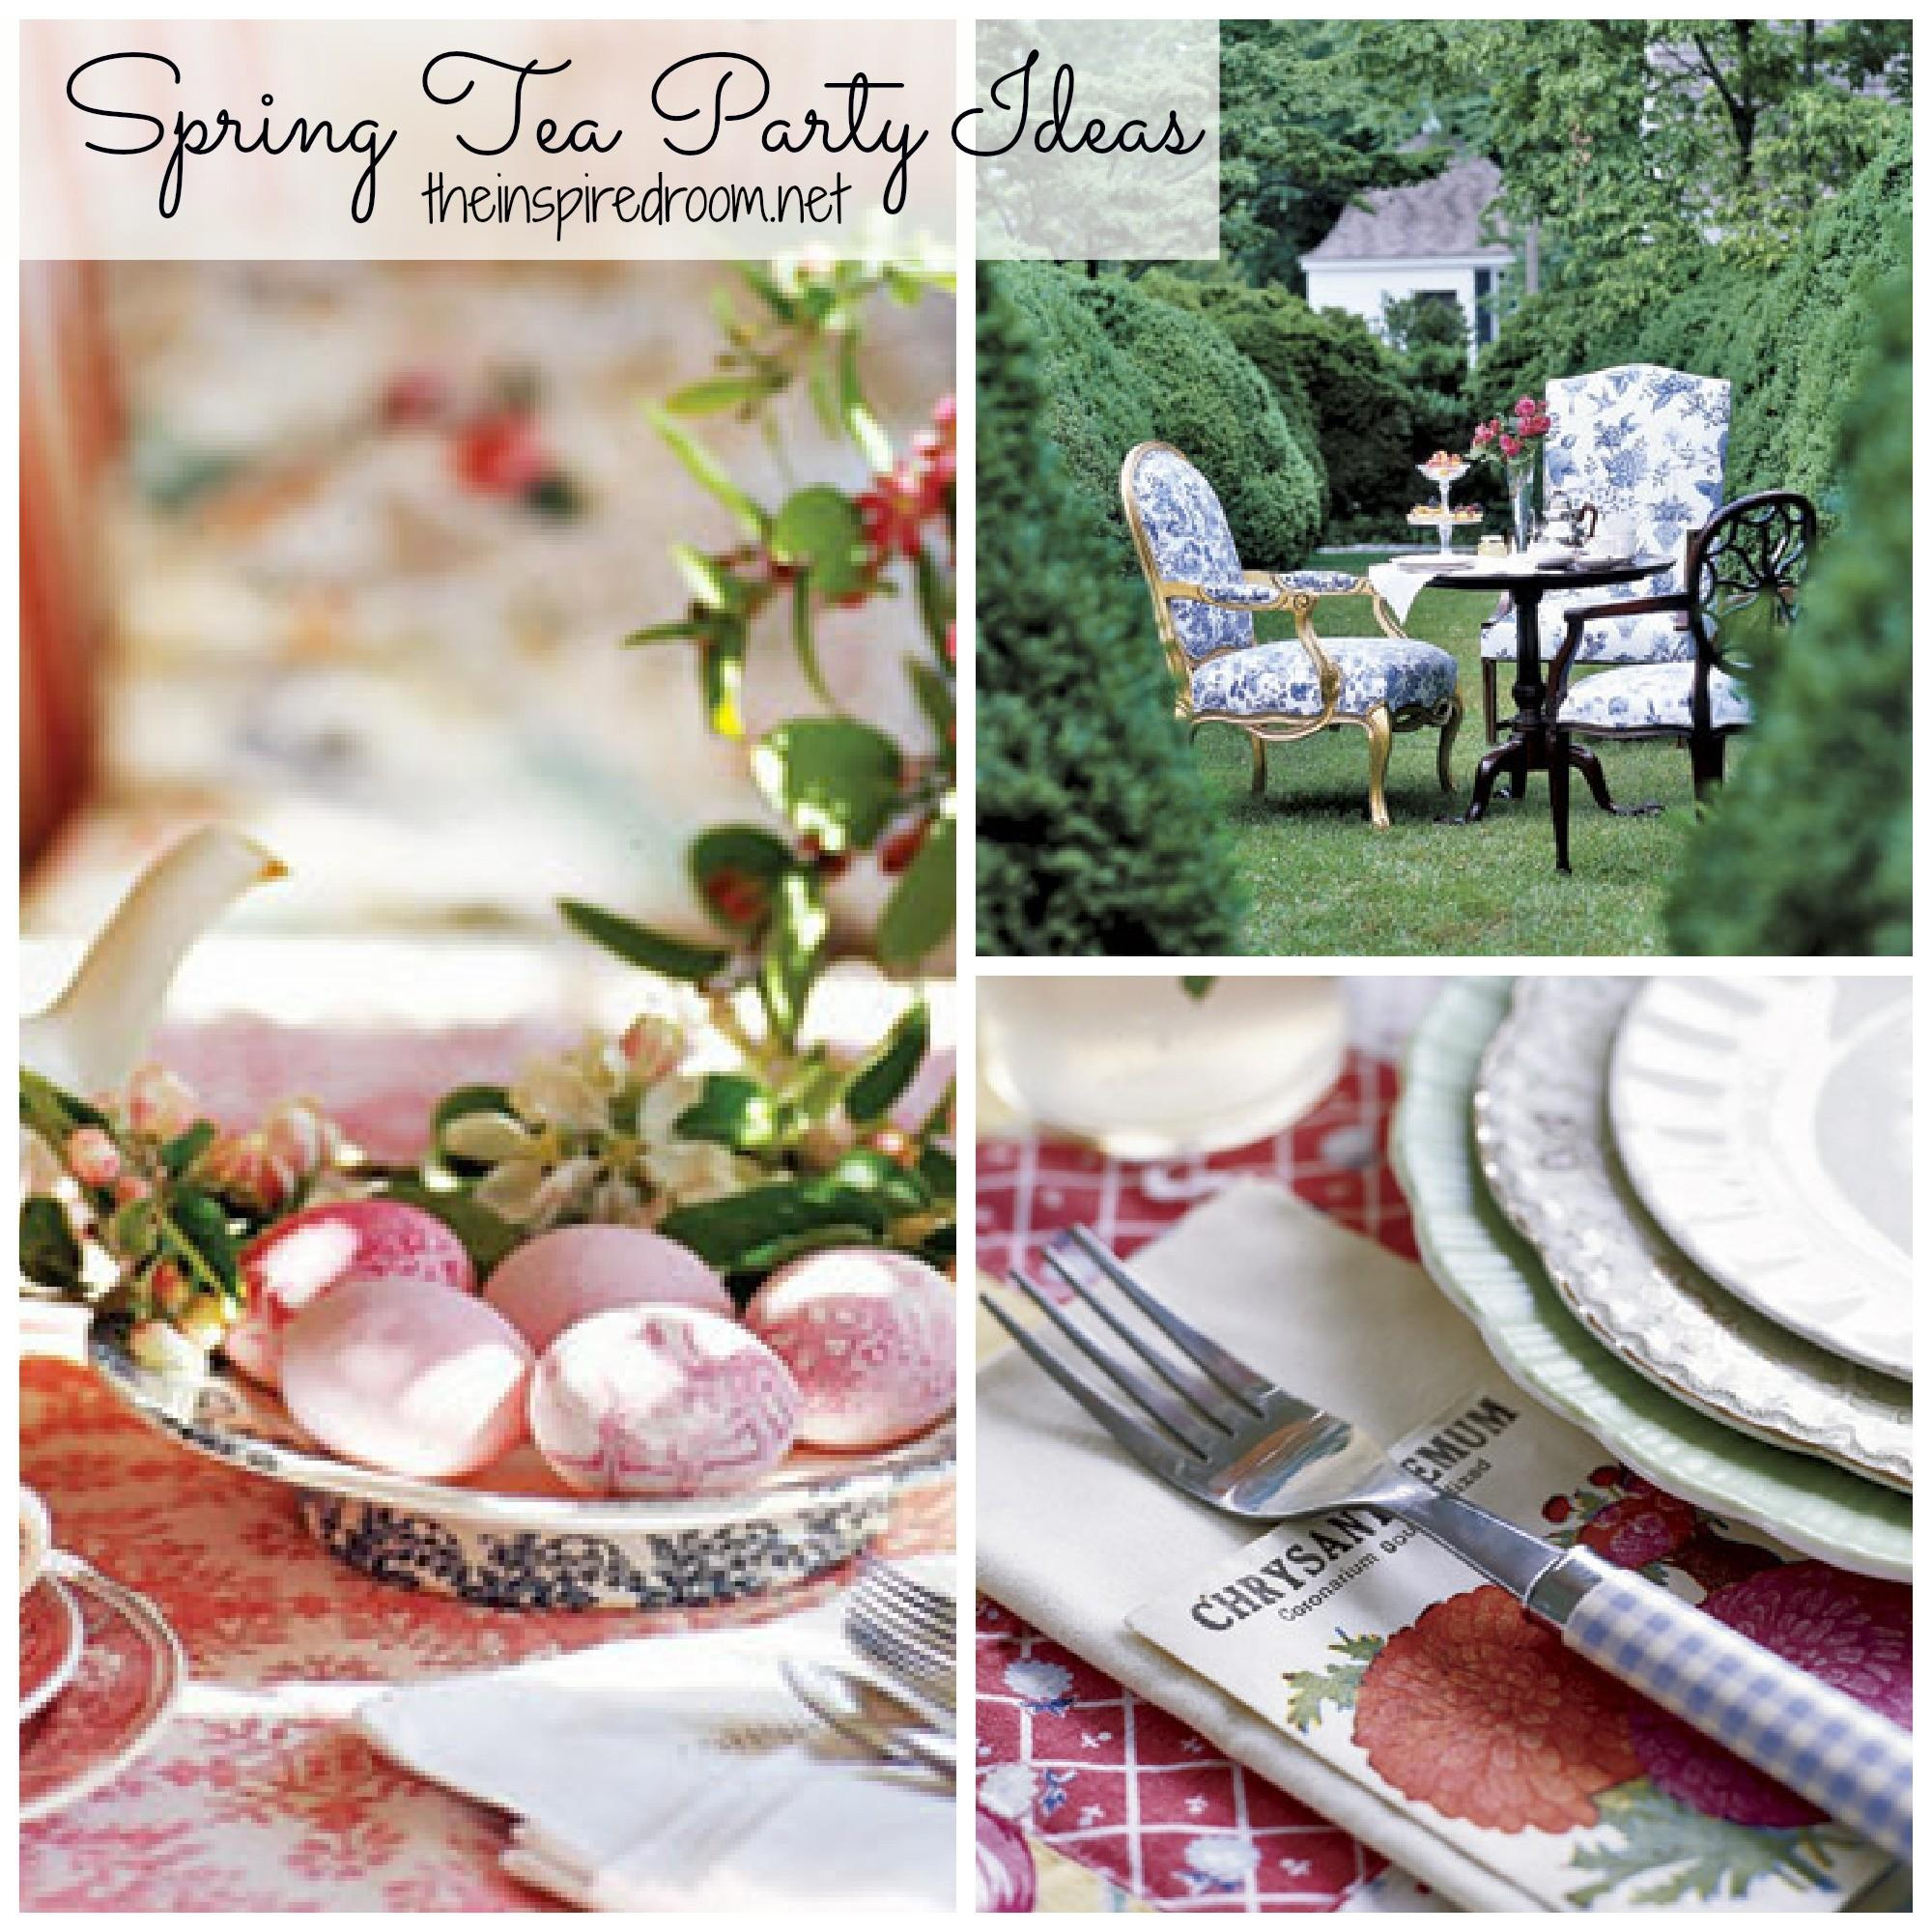 Spring Time Tea Parties Sweet Ideas Inspired Room